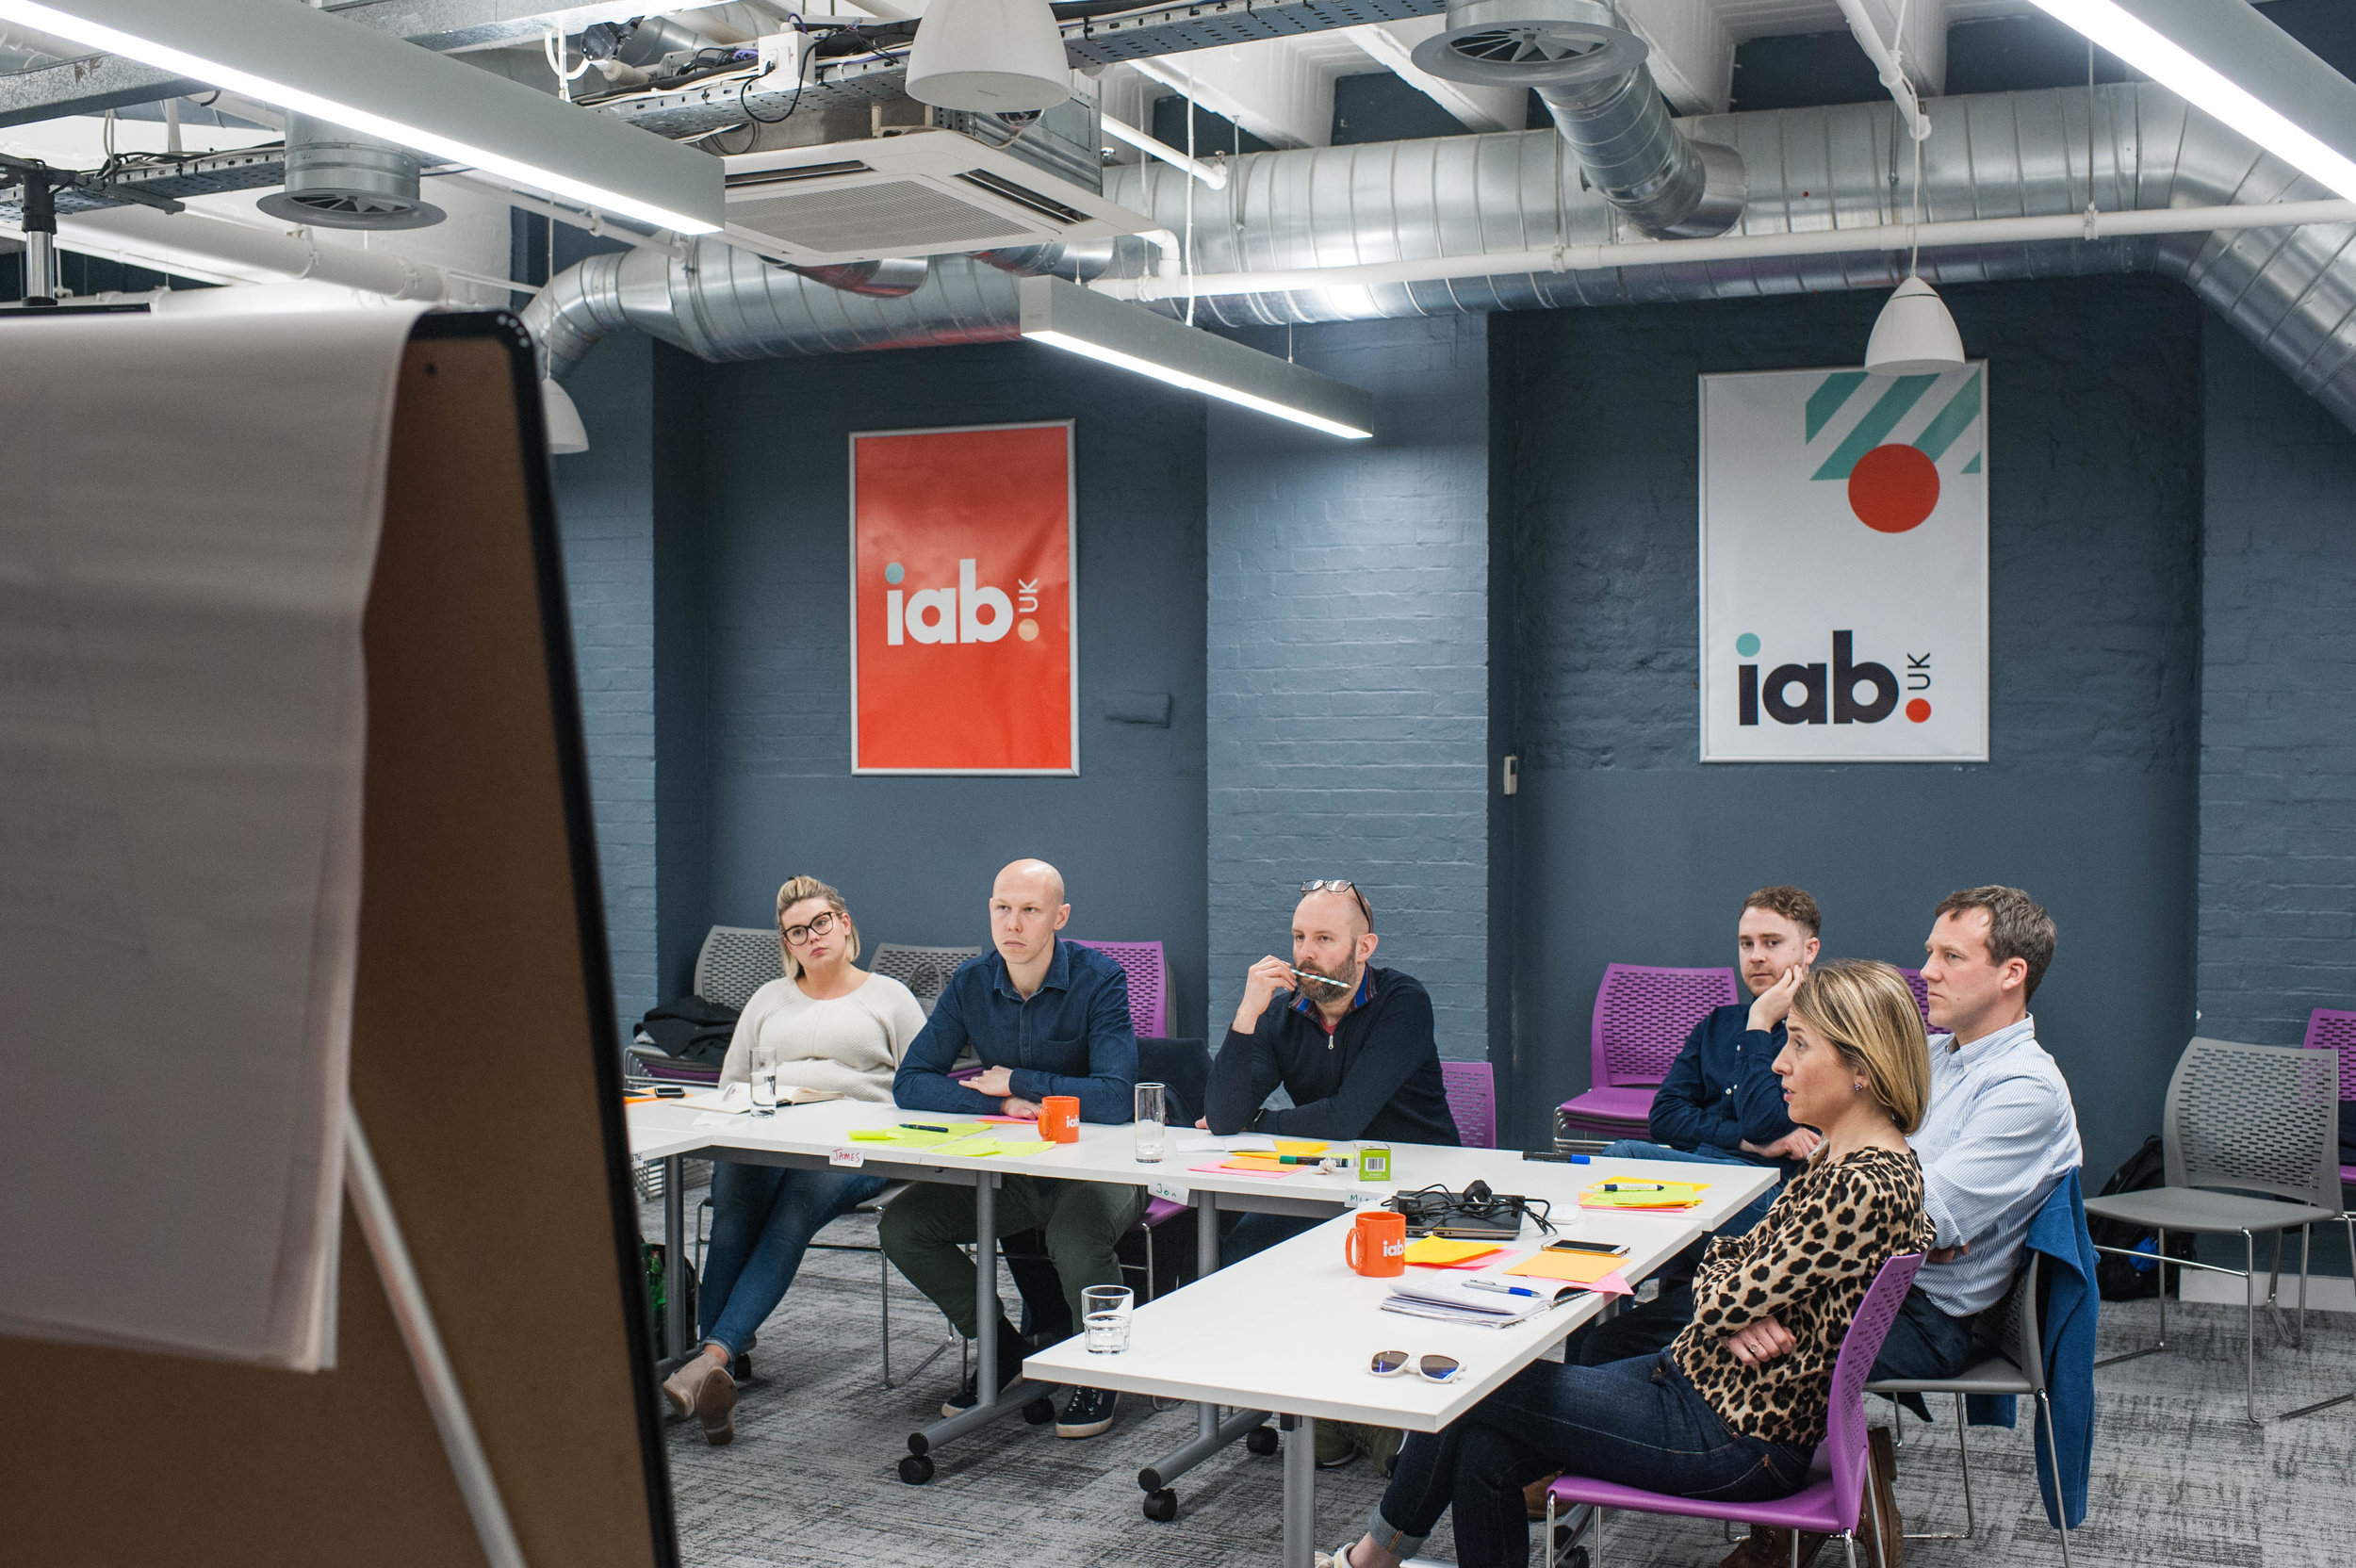 IAB Uk_Incidental Shots_SM (185 of 312).jpg